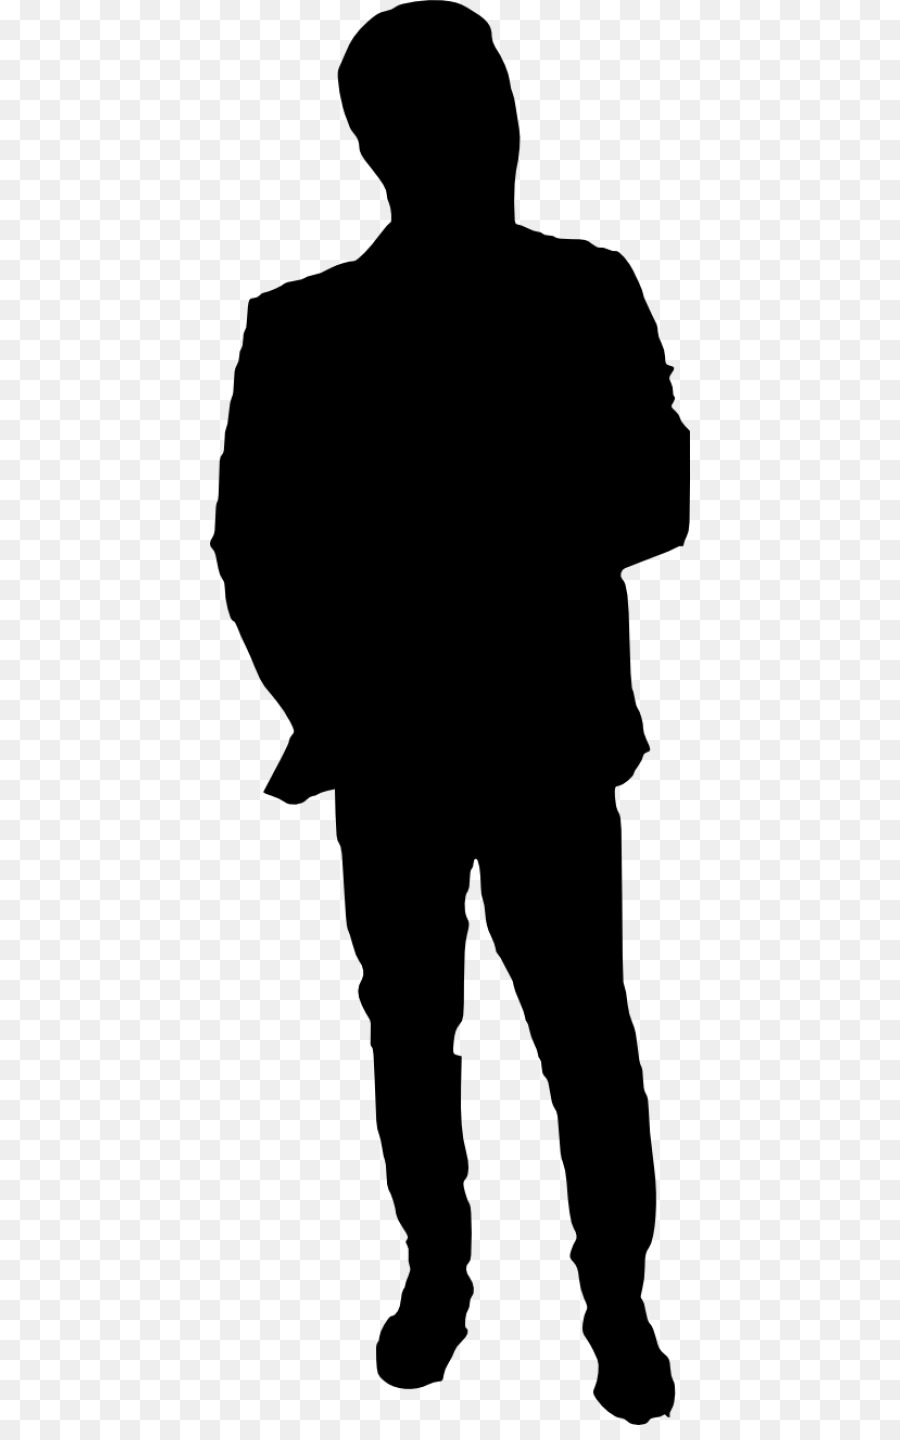 Silhouette Black png download.